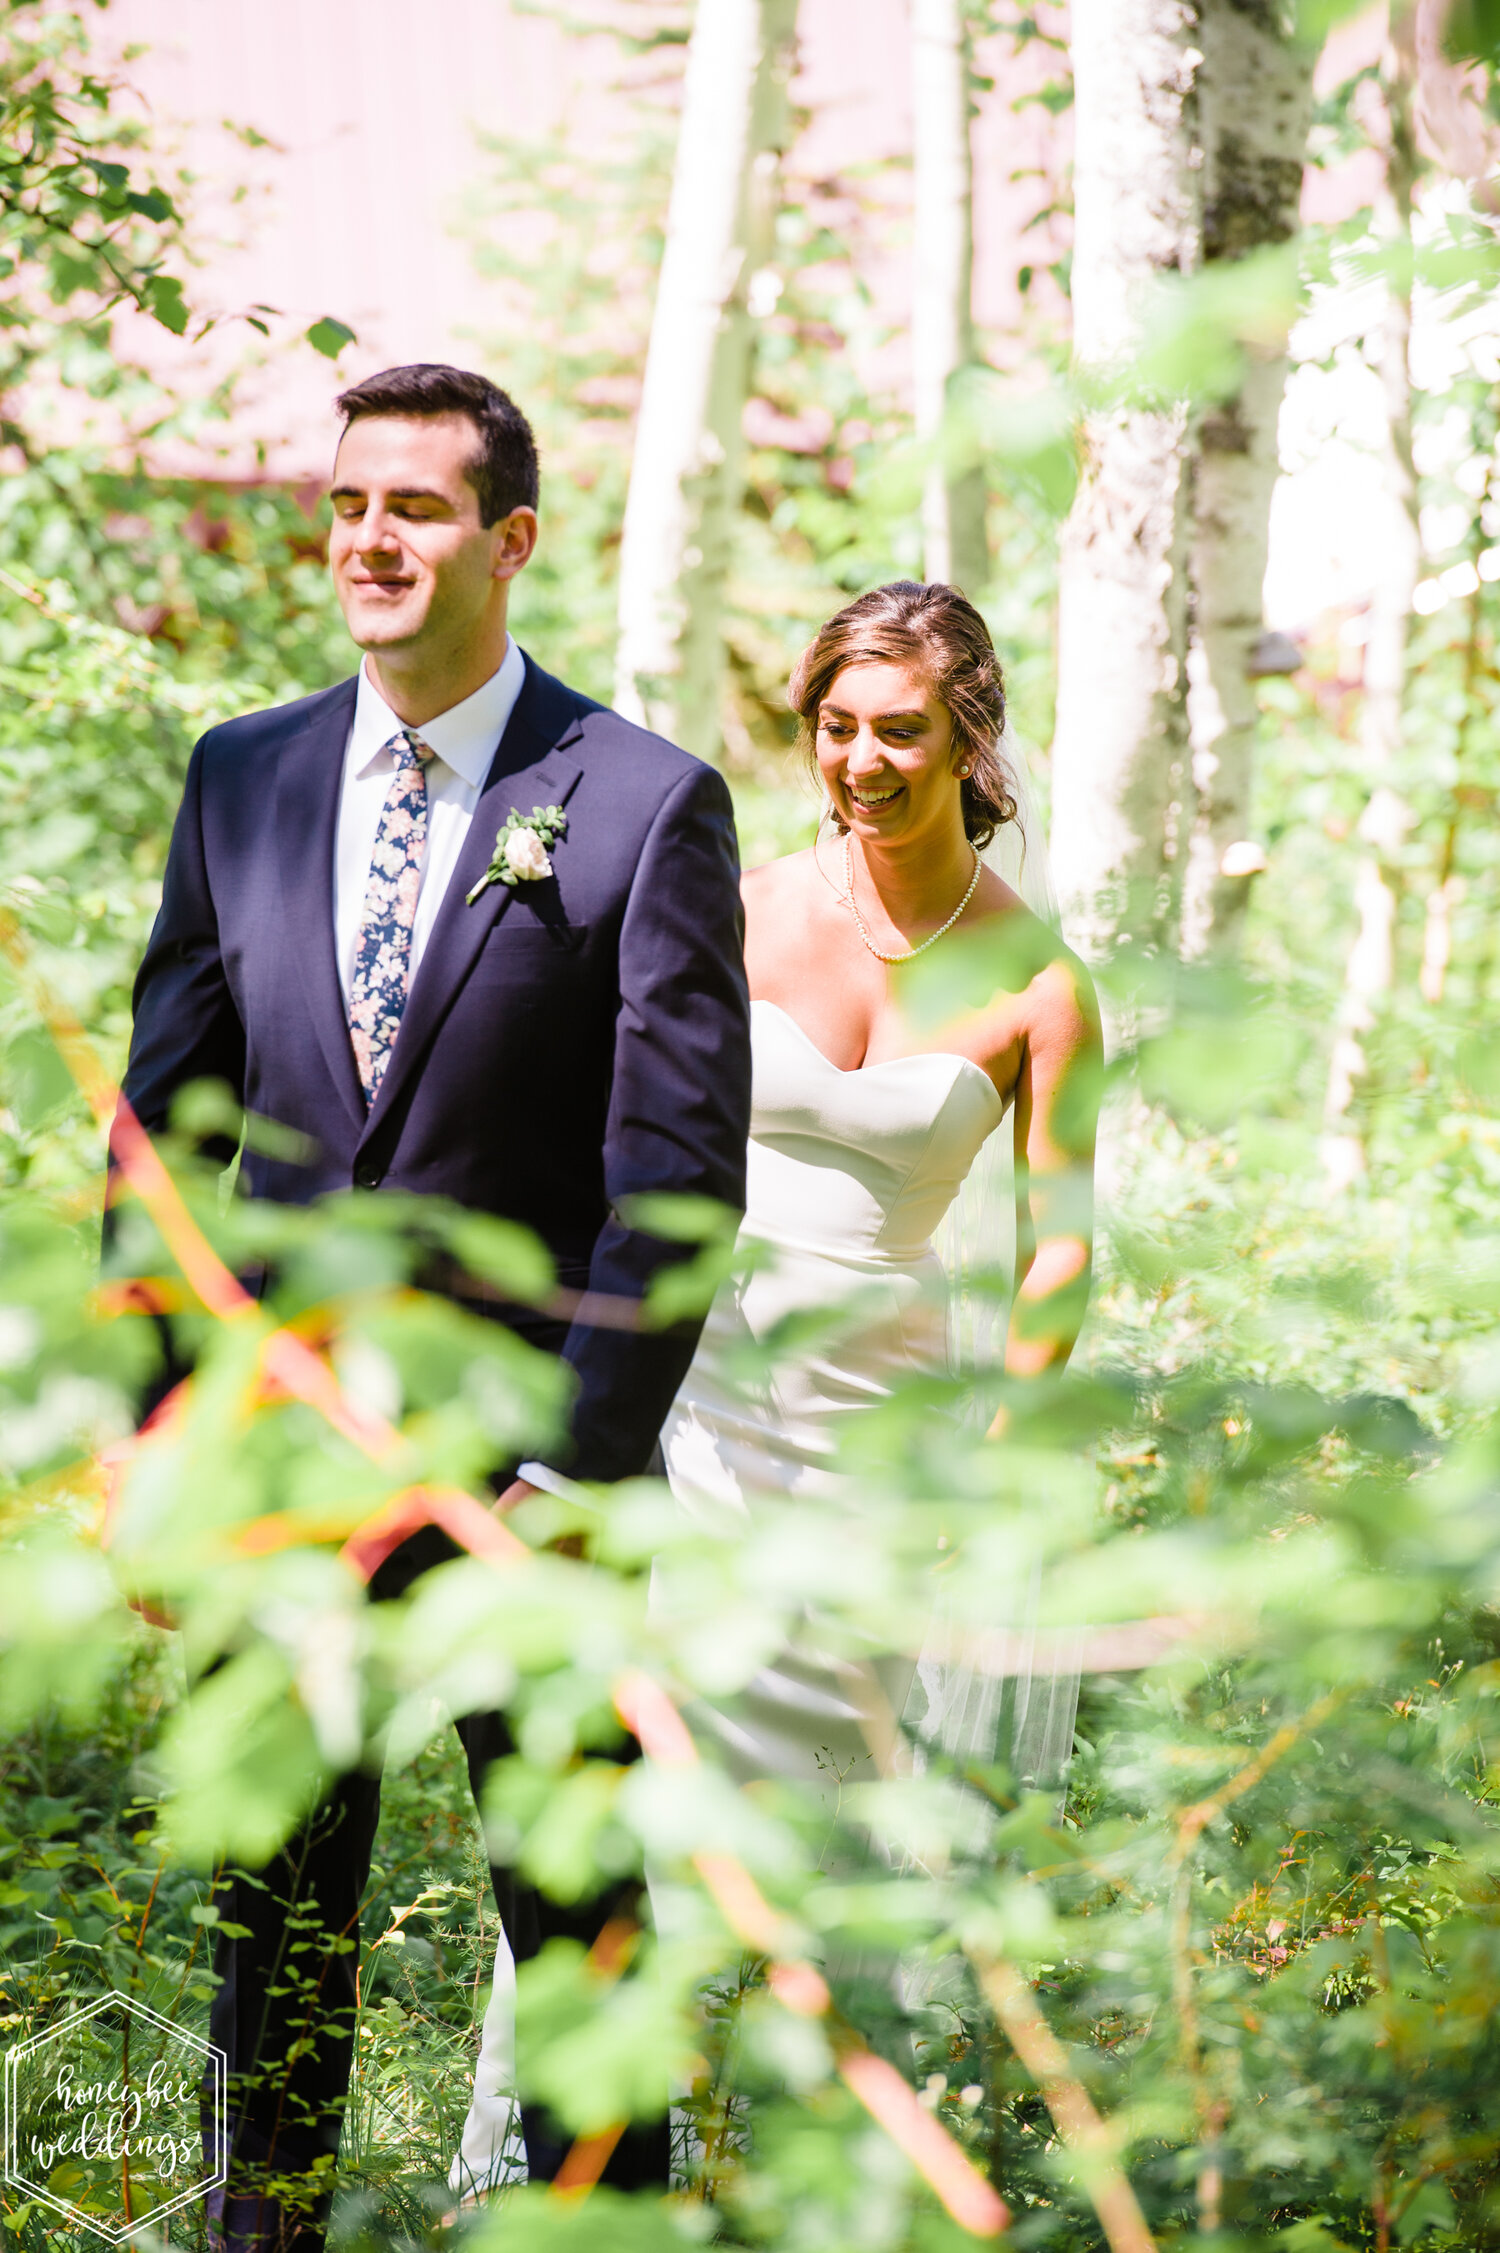 013Glacier National Park Wedding_Glacier Outdoor Center_Honeybee Weddings_Anna & Seth_July 21, 2019-148.jpg